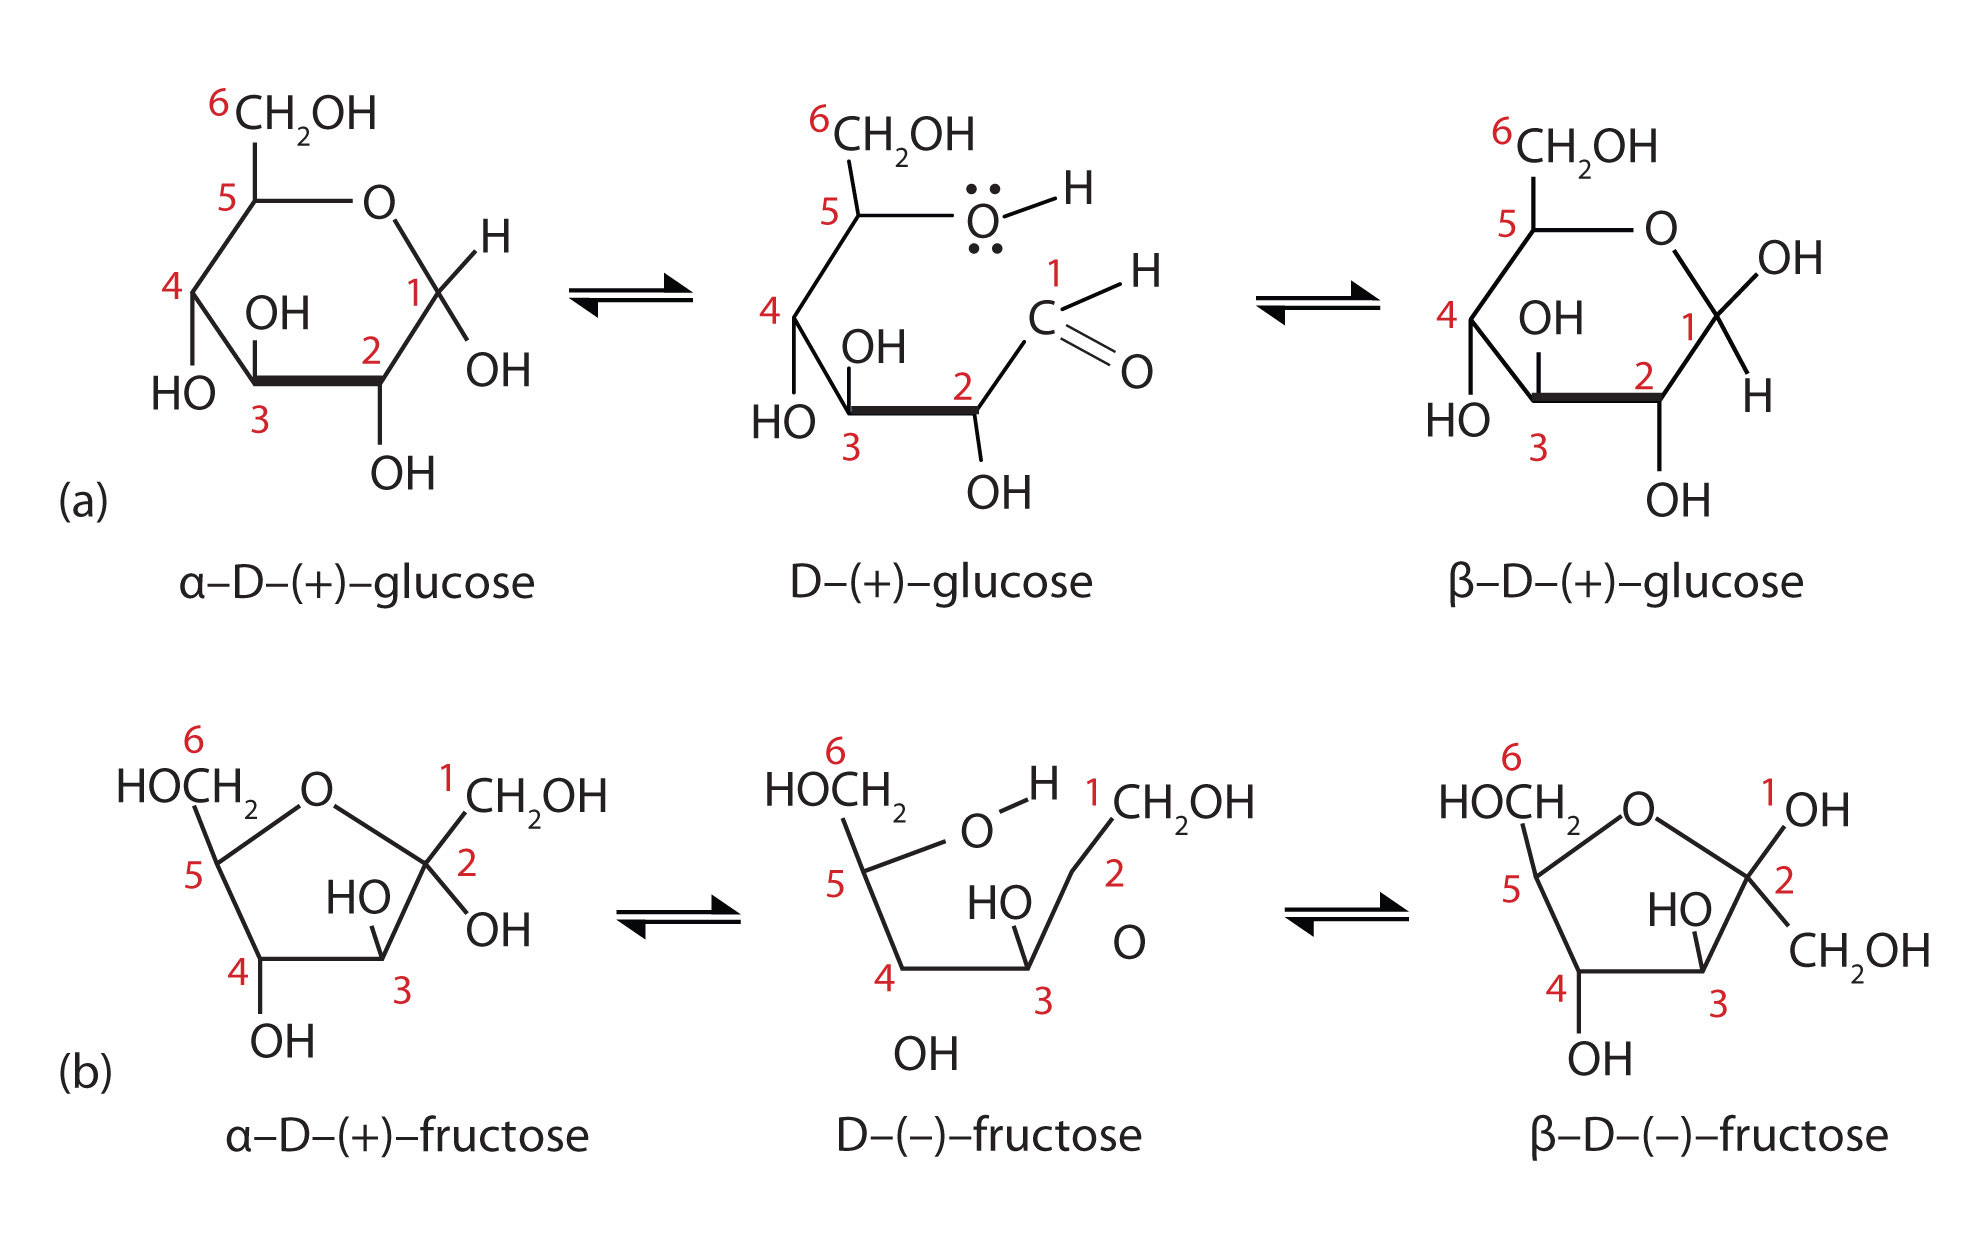 cyclic structures of monosaccharides